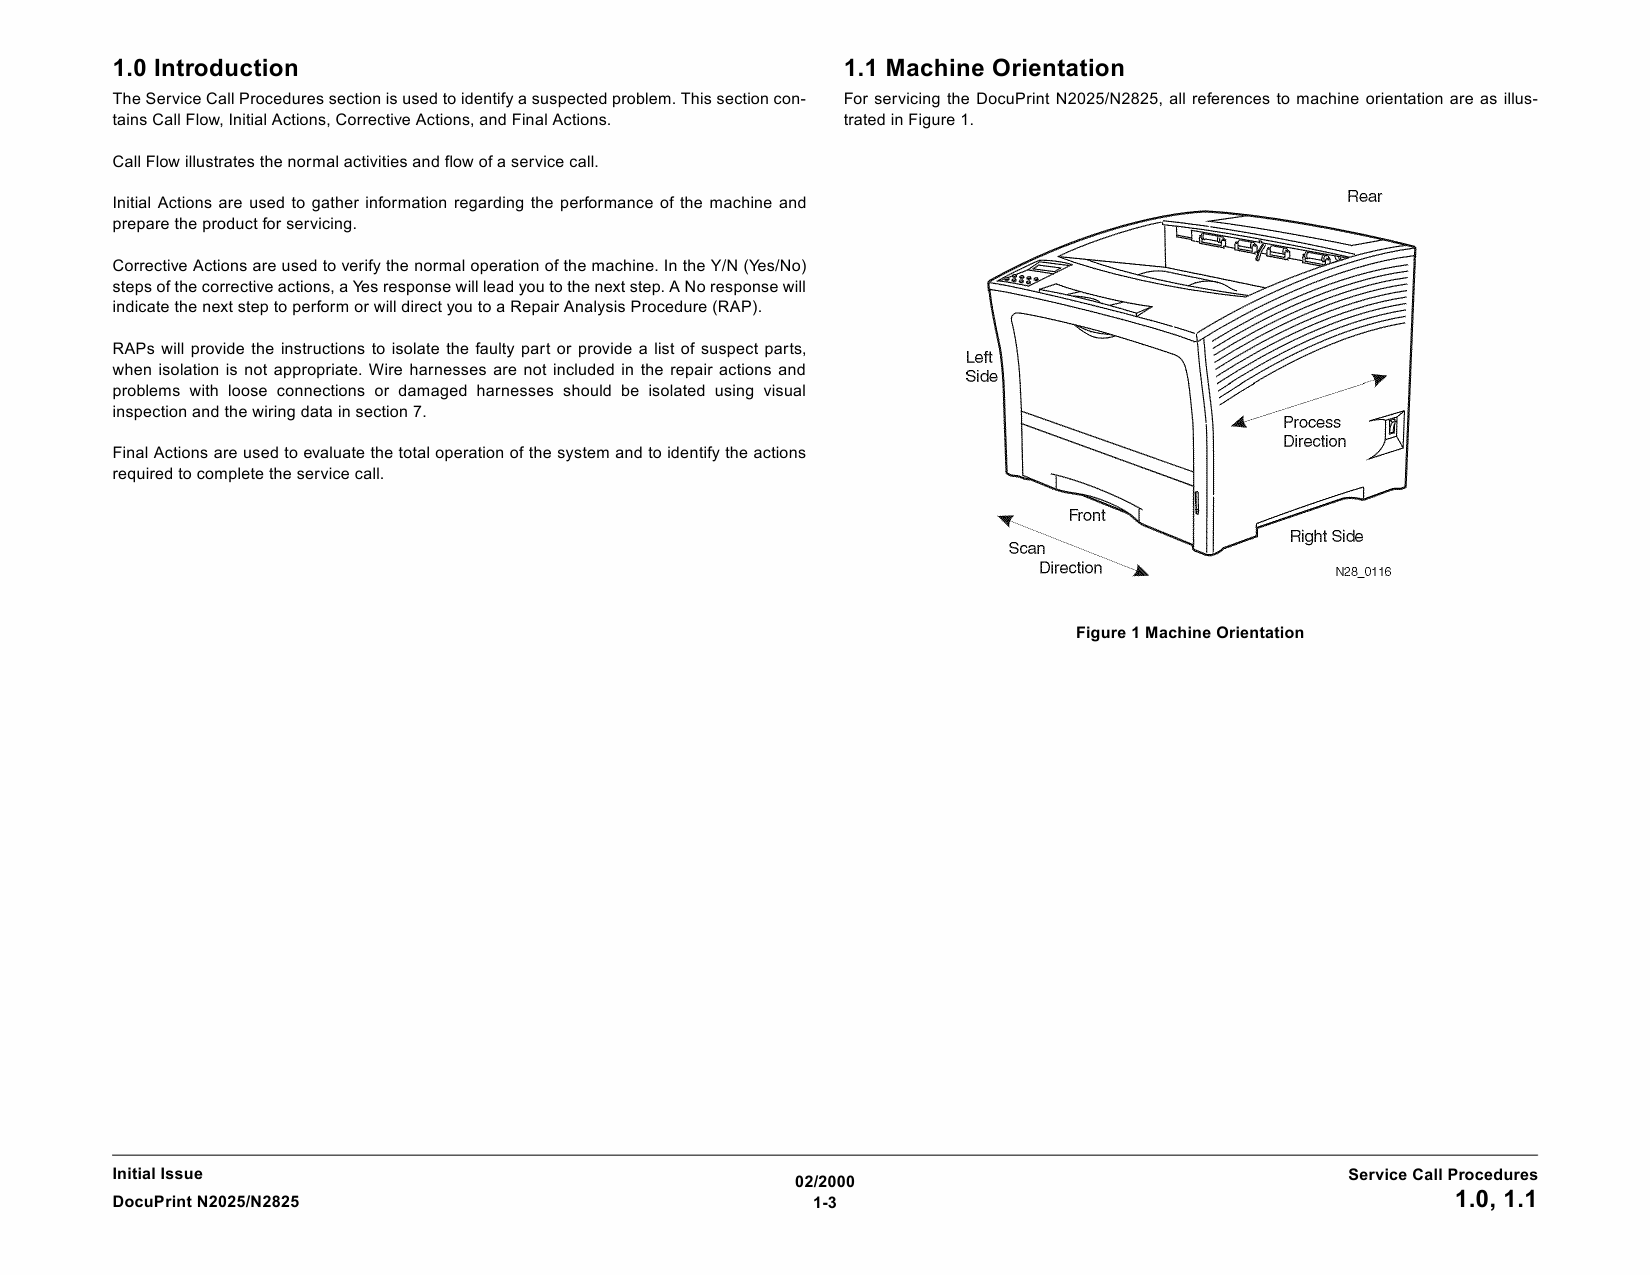 Xerox DocuPrint N2025 N2825 Service Manual